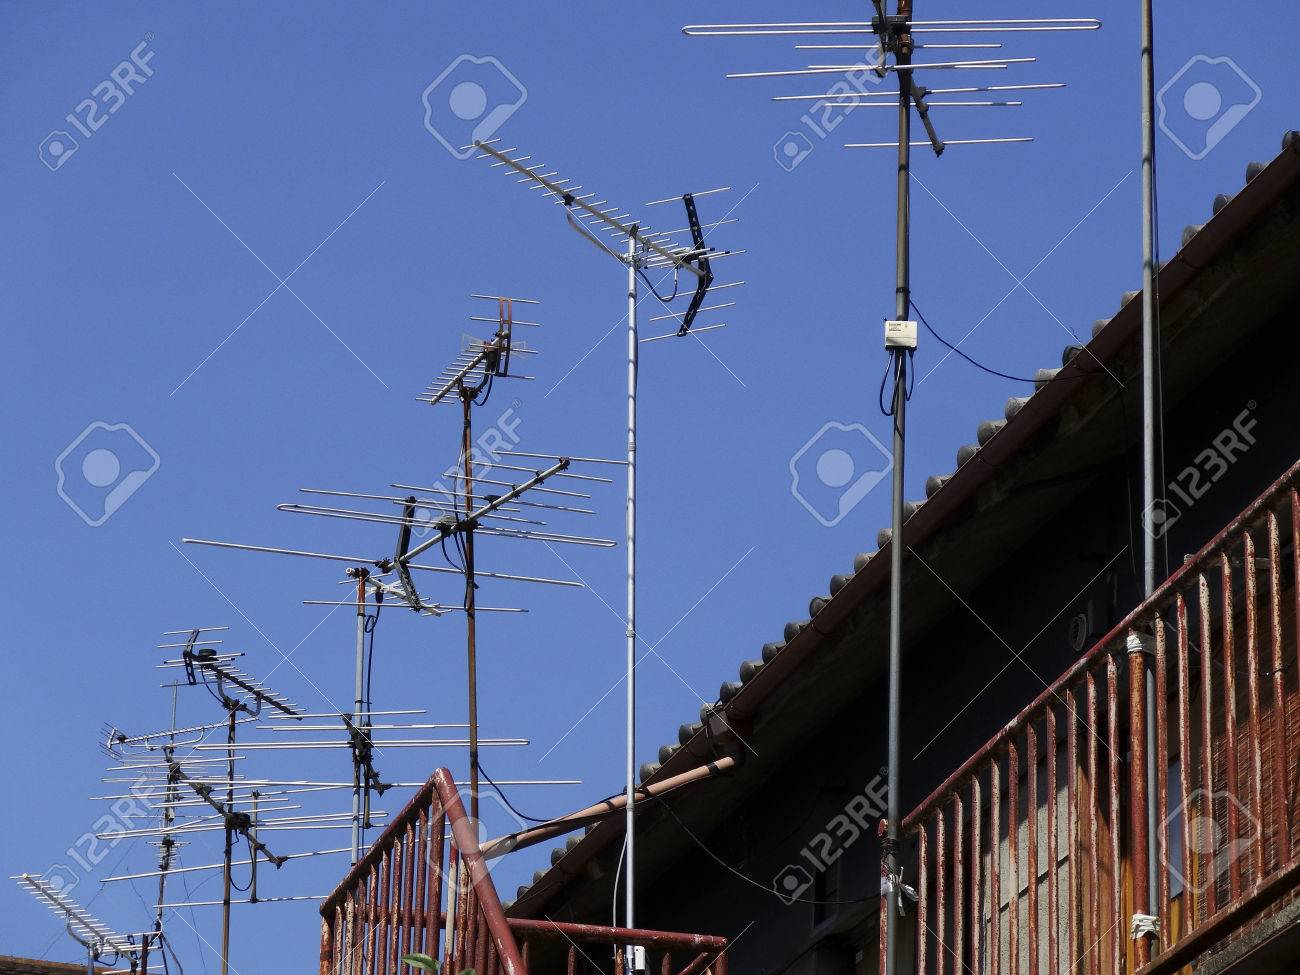 Apartment Flood The TV Antenna Stock Photo, Picture And Royalty ...